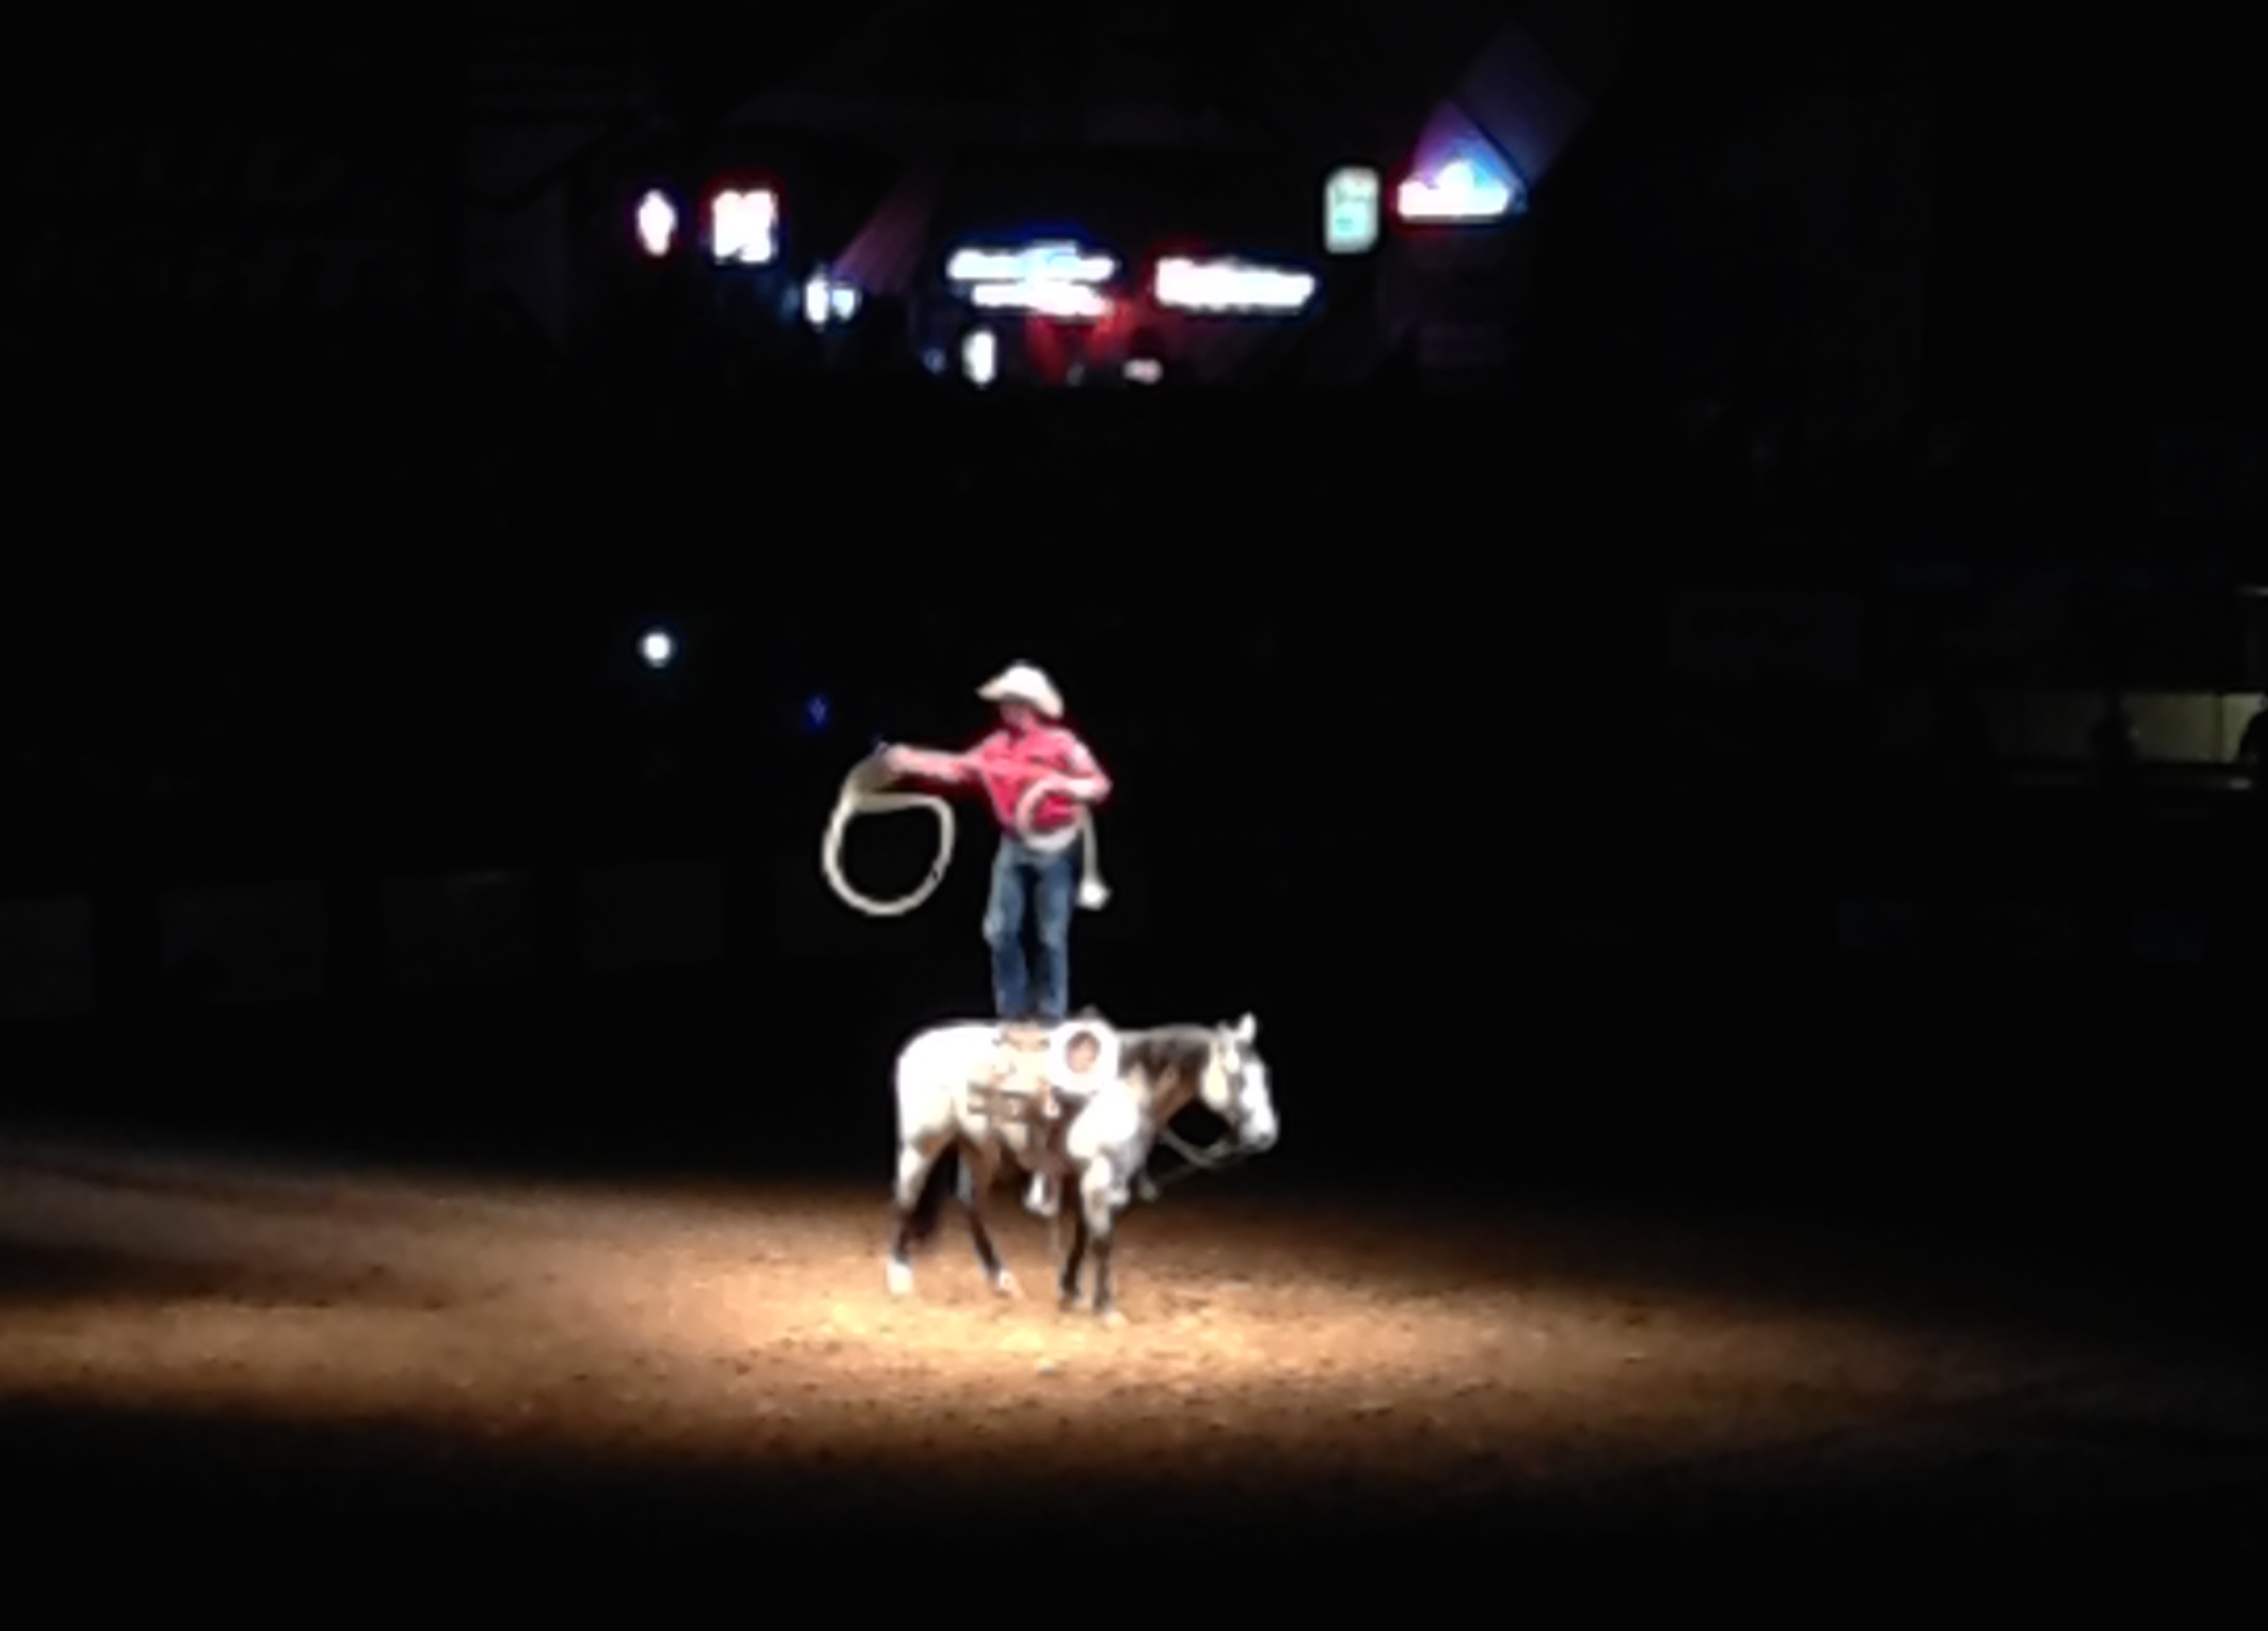 The rodeo was definitely a crazy experience...